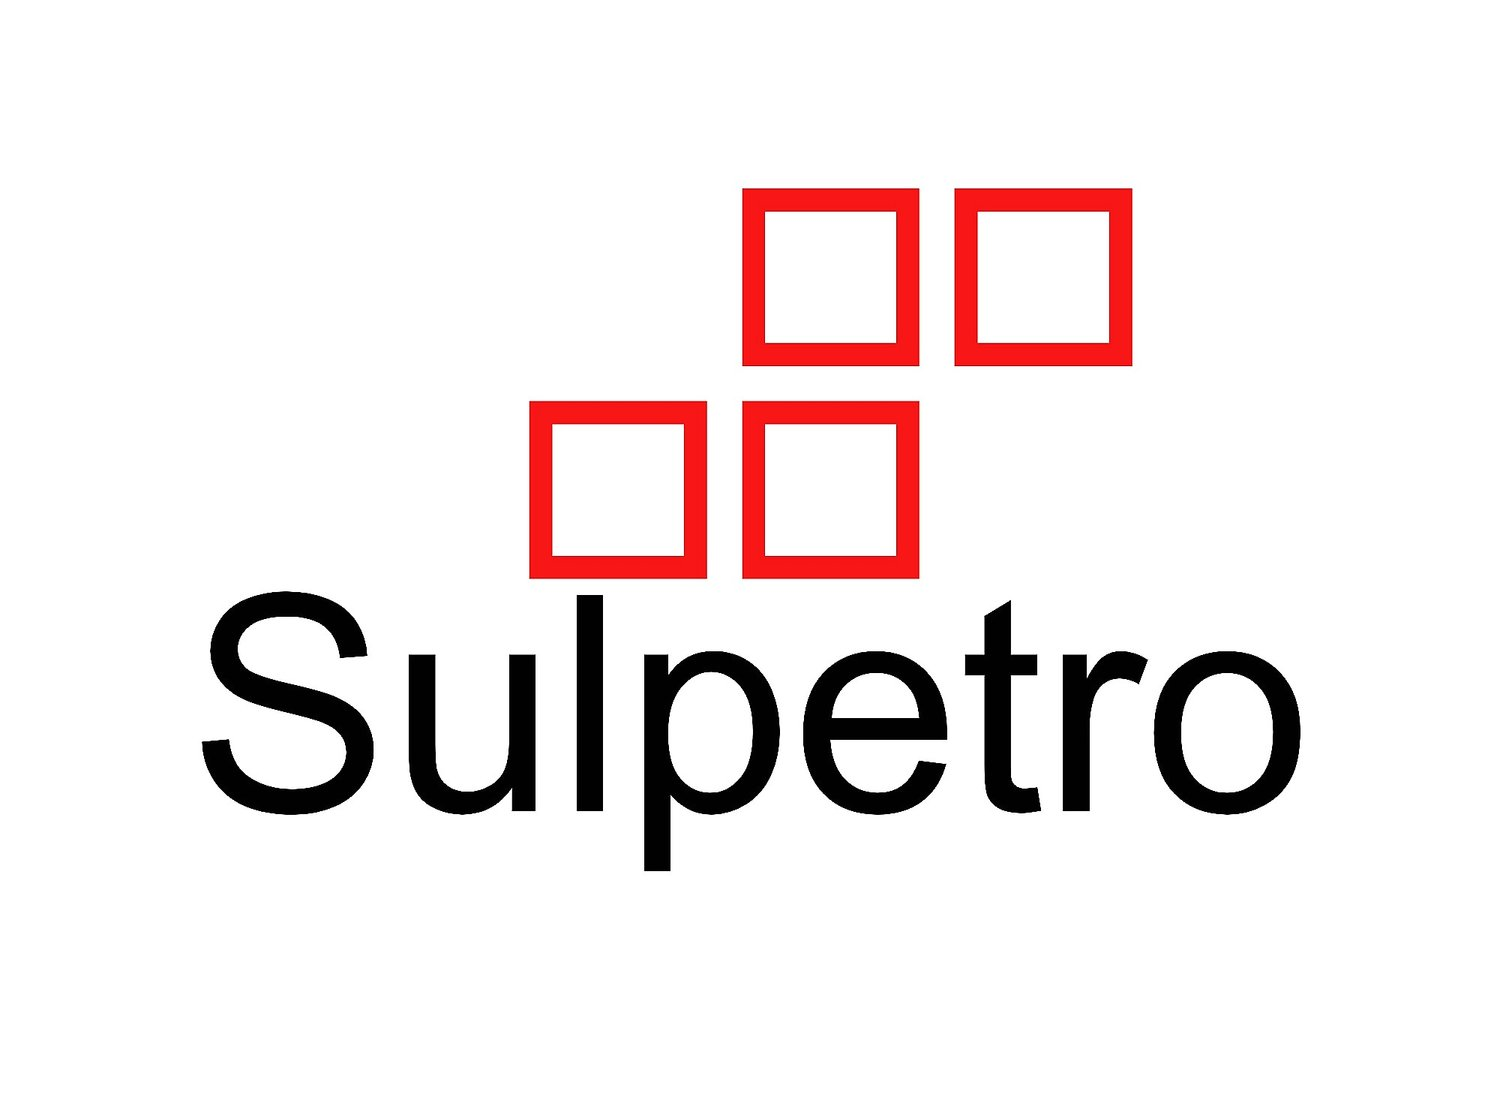 Sulpetro LPG-NGL Market Intelligence data